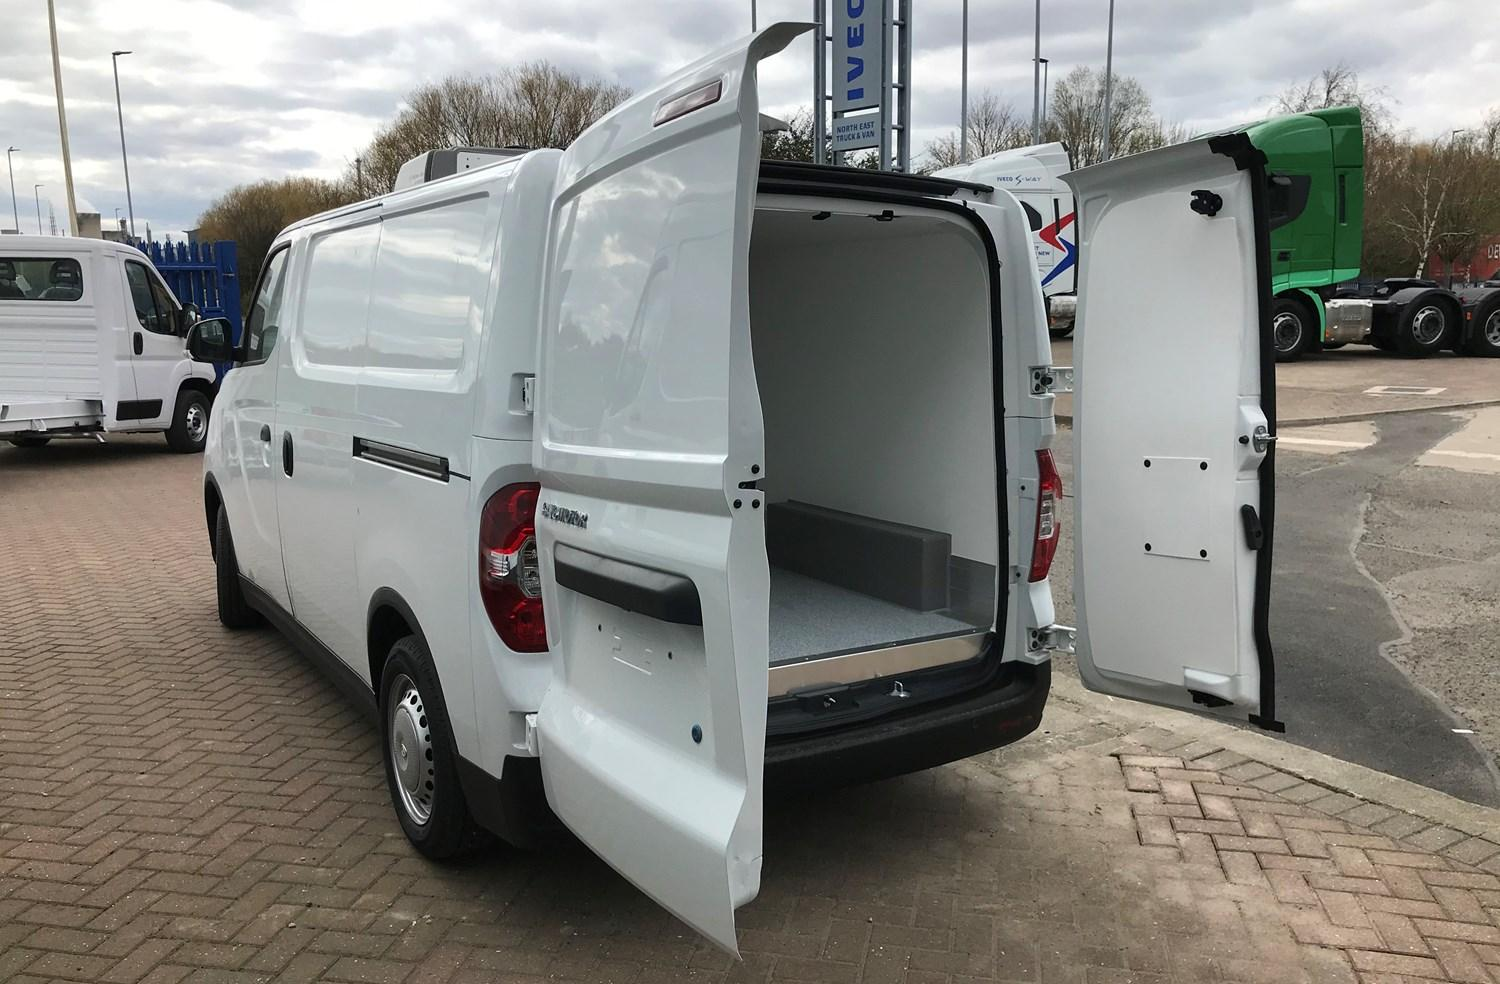 Maxus e Deliver 3 Fridge Unit